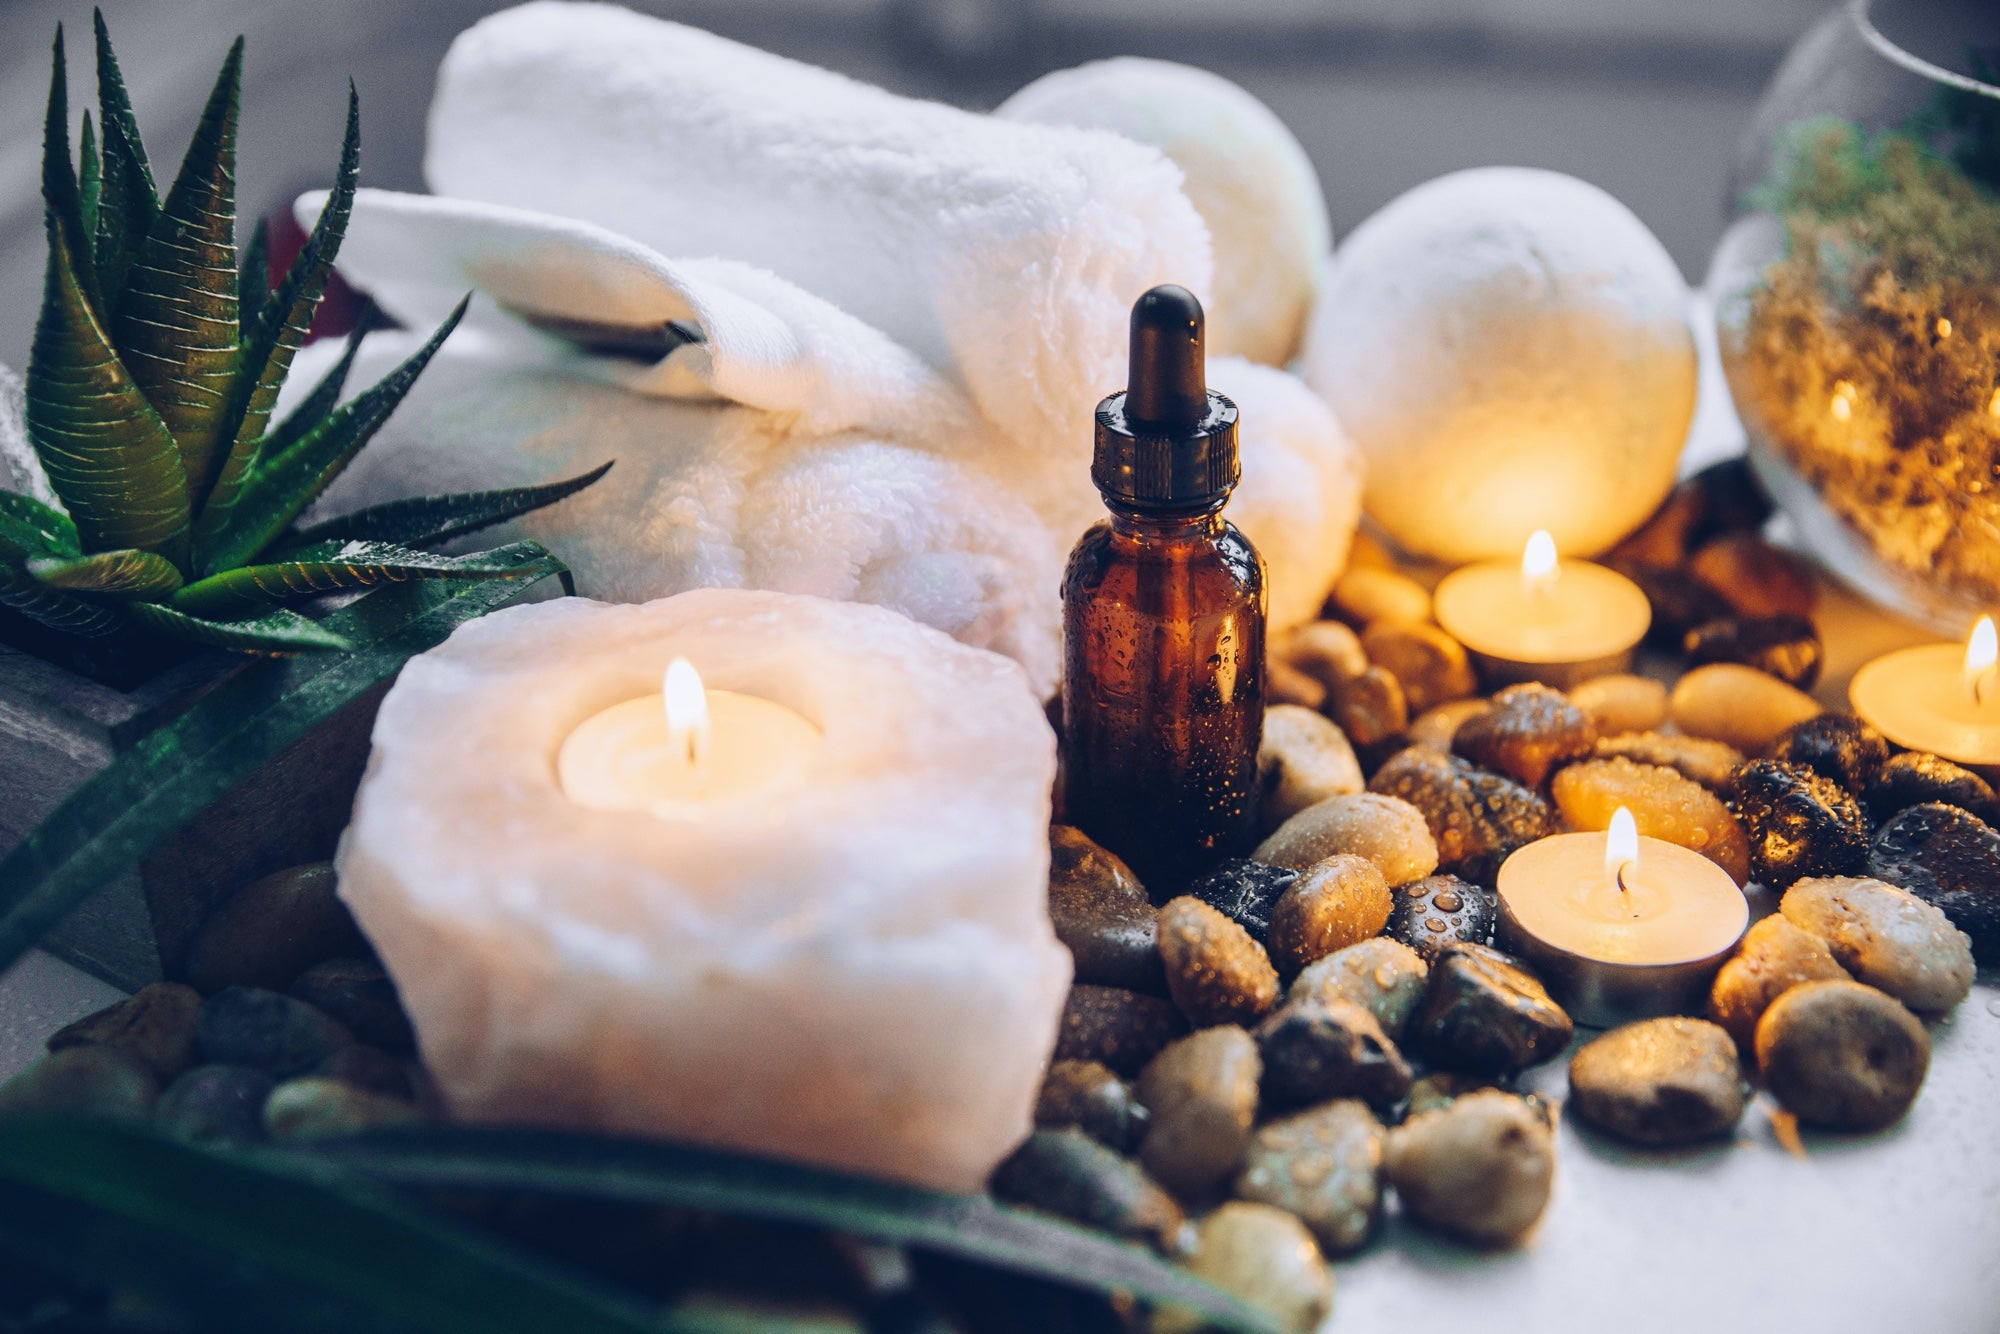 Spa products arranged around plants, stones, and a lit candle